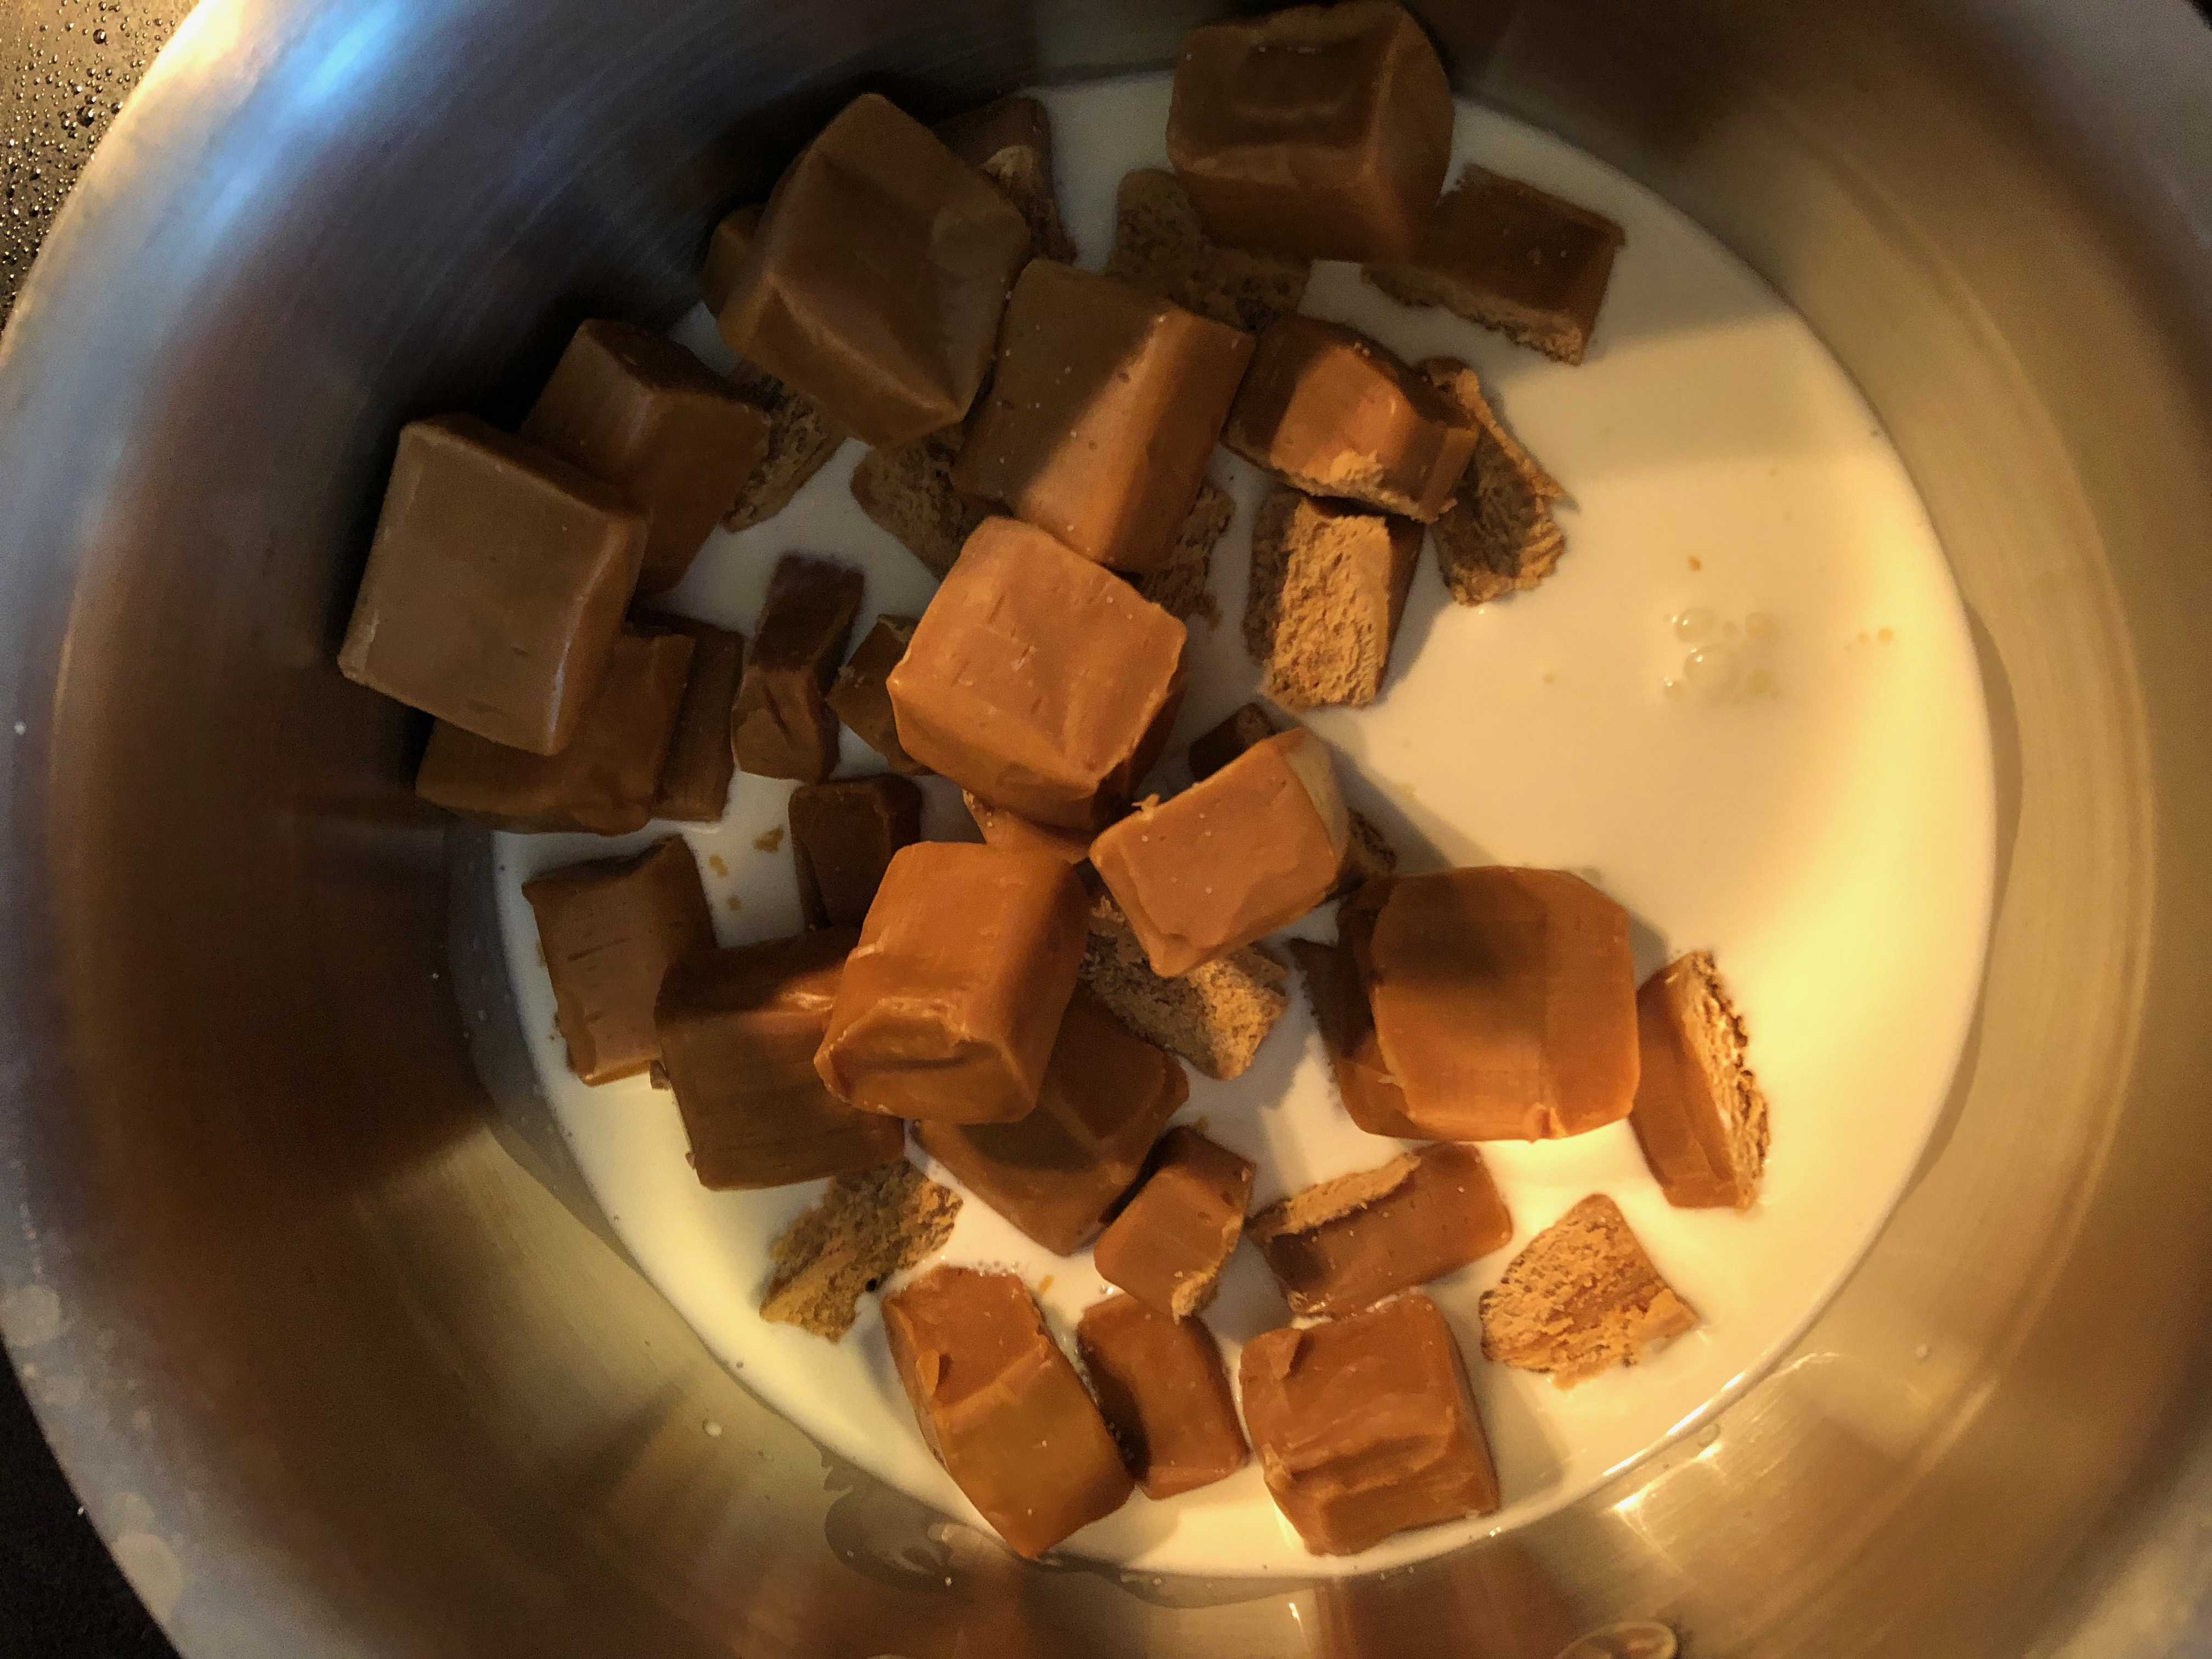 caramel candies and heavy cream in a saucepan